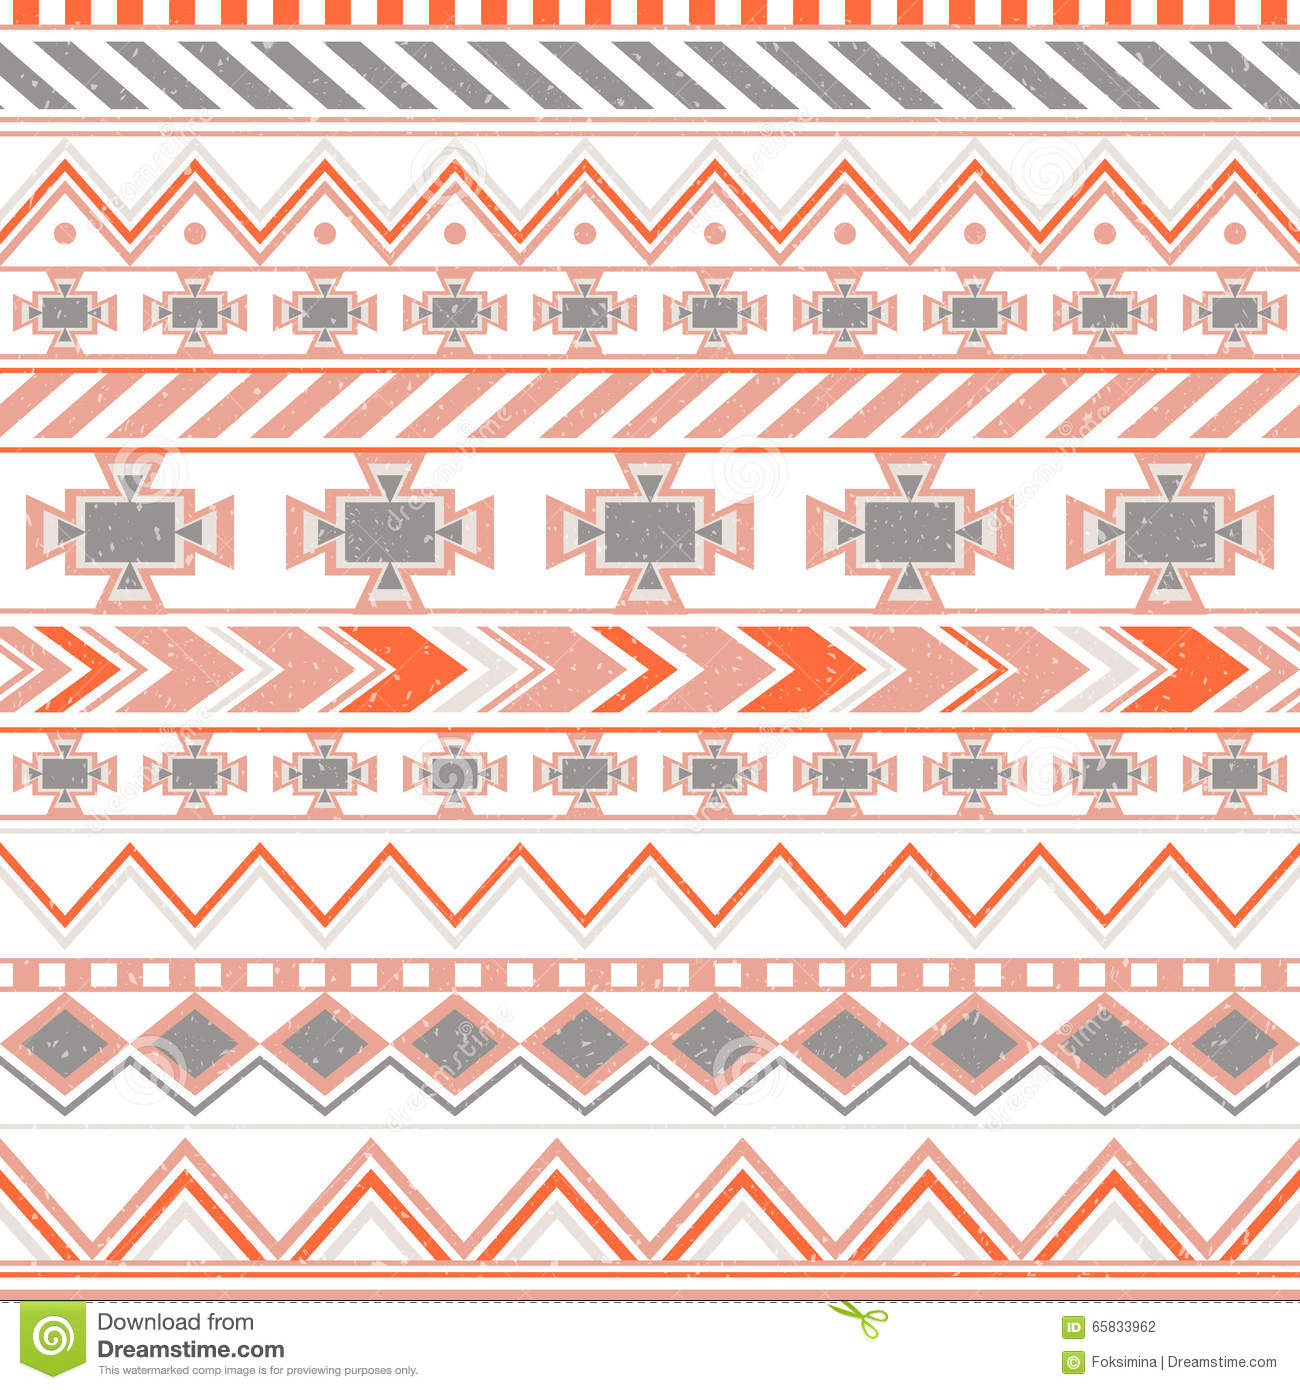 Blue Tribal Wallpapers: Aztec Colorful Ethnic Seamless Pattern, Tribal Orange And